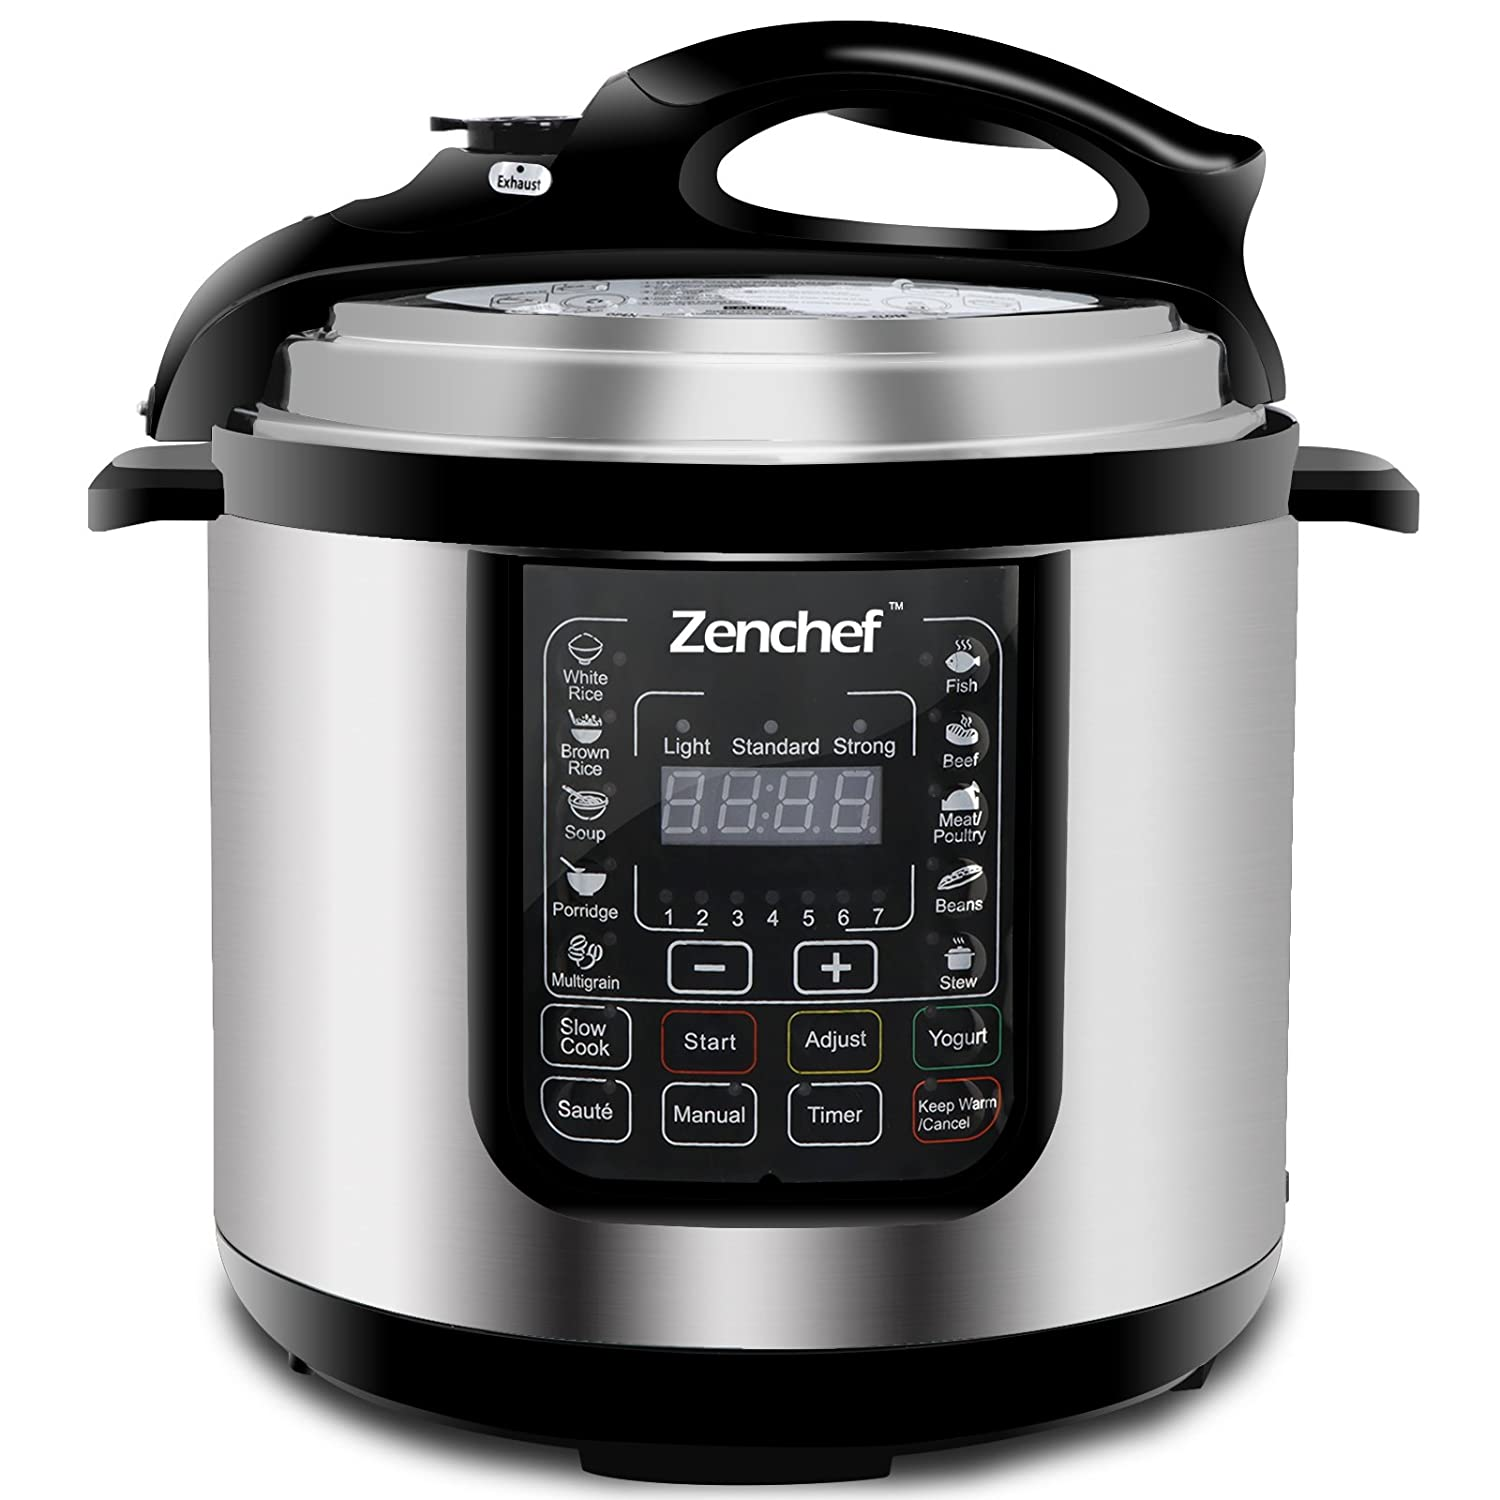 Zenchef 14-in-1 NEWEST 6Qt Multifunctional Stainless Steel Electric Pressure Cooker 1000W w/LED Display Screen, Slow Cooker, Rice Cooker, Sauté, Steamer, Yogurt Maker & Food Warmer